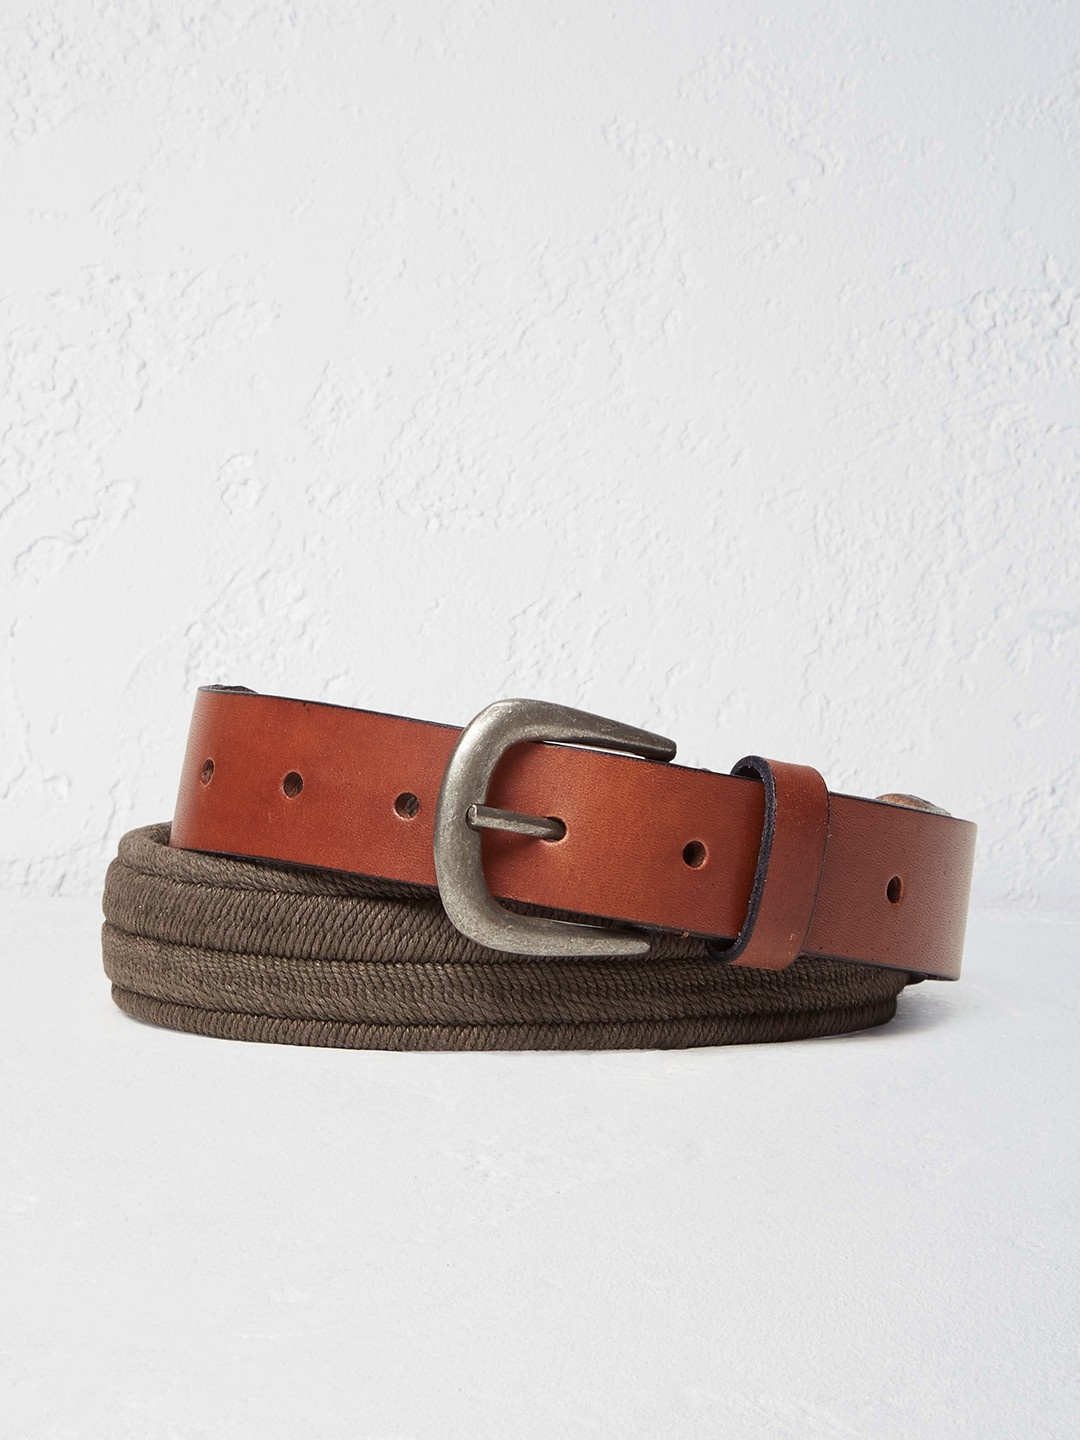 1GB Elastic leather belt